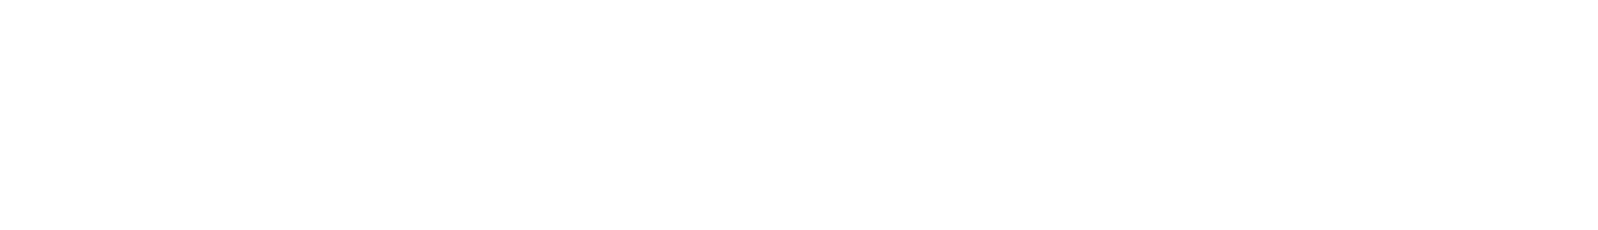 Nittany Eye Associates Logo